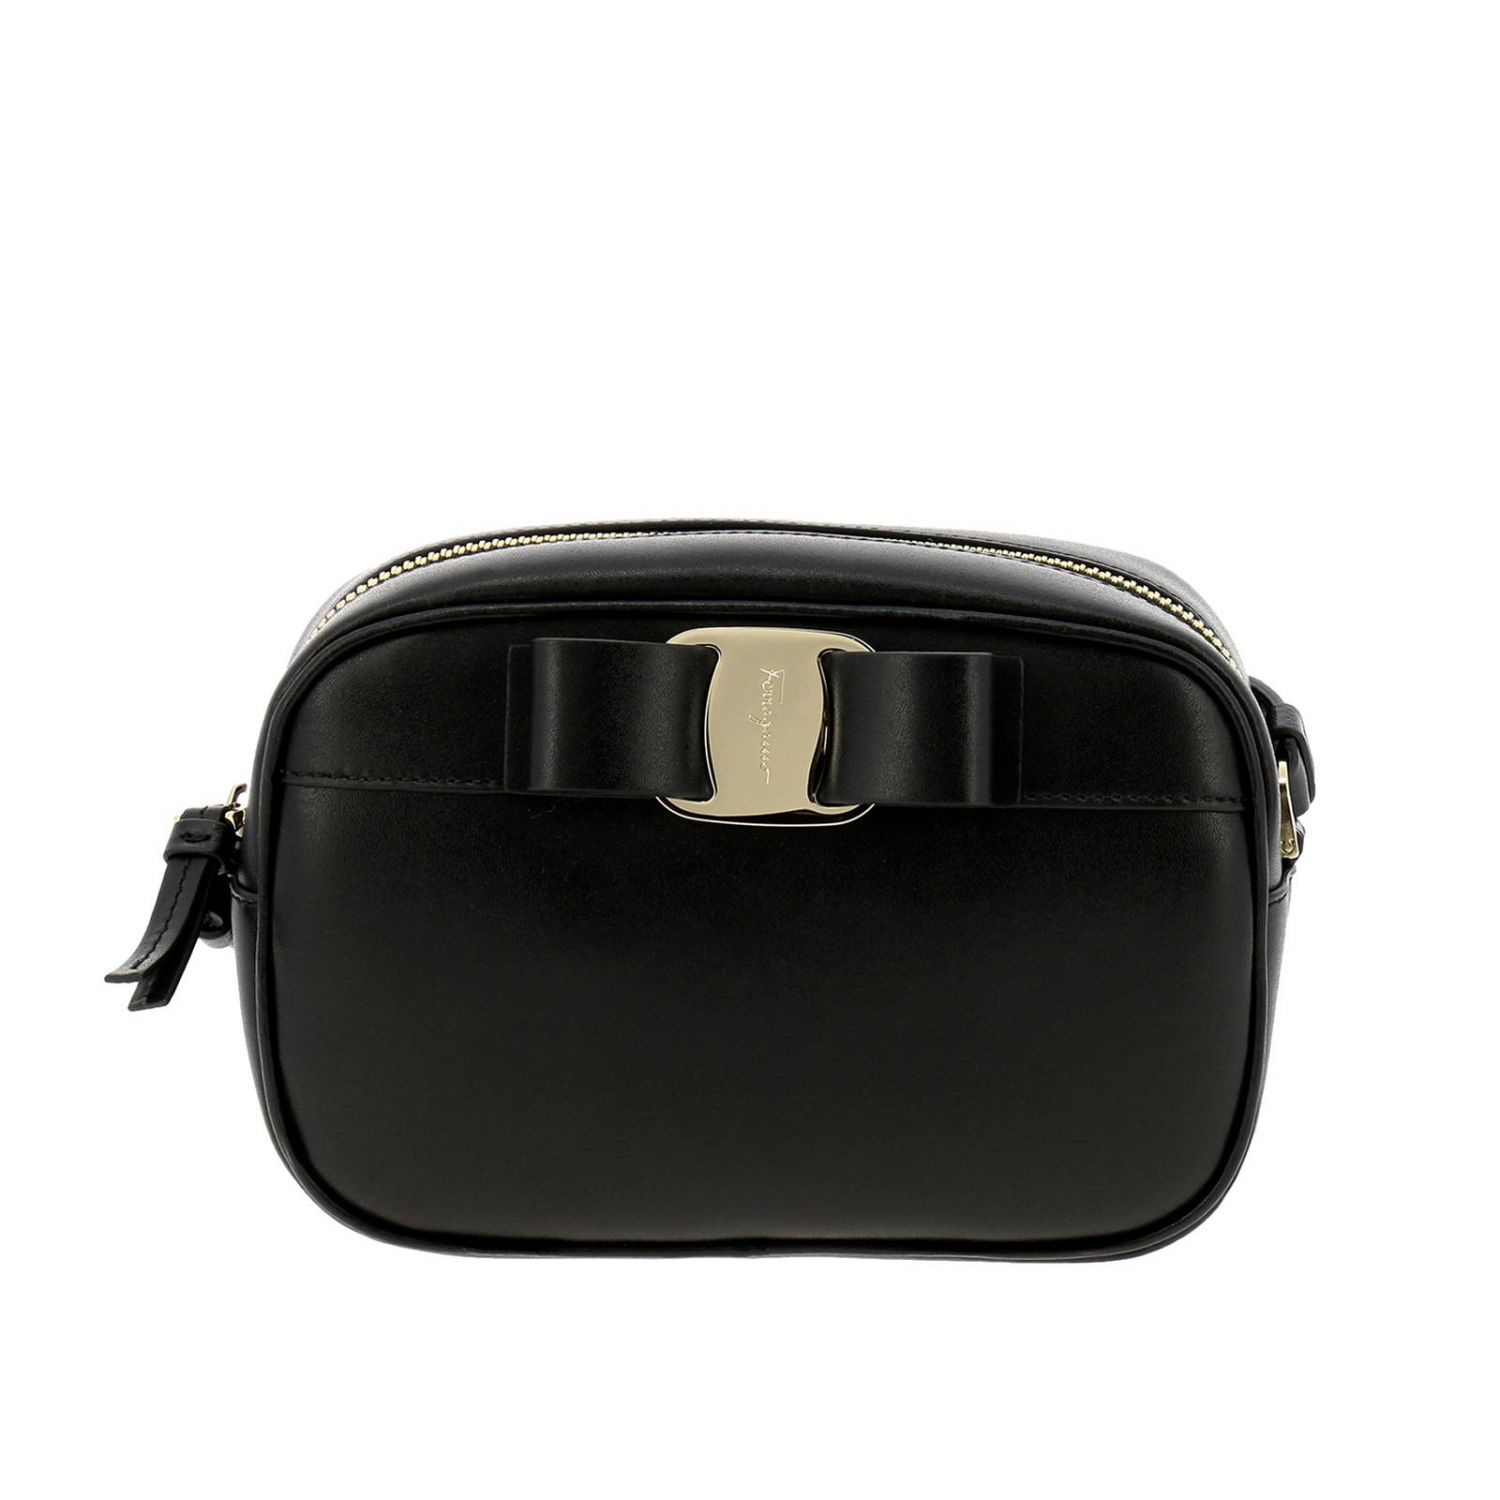 Shoulder bag women Salvatore Ferragamo black 1